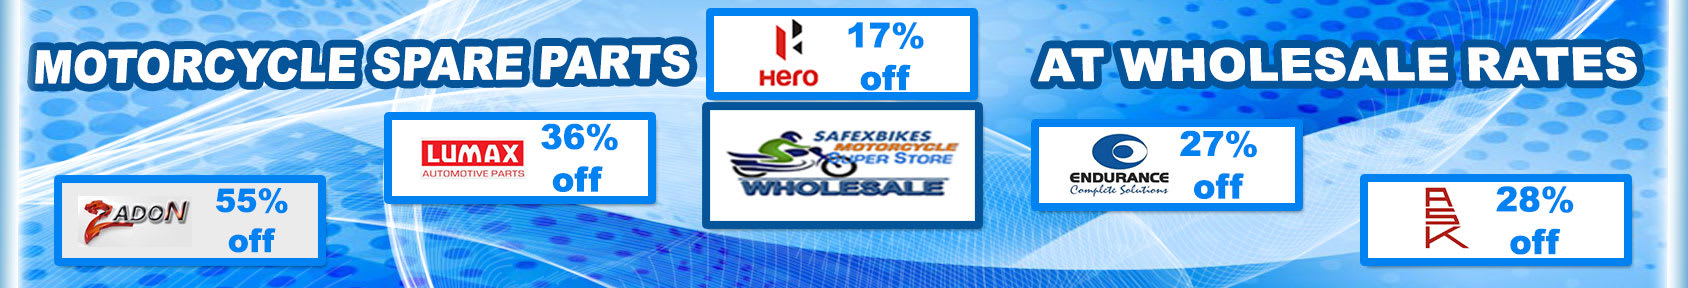 Special offers on Genuine Motorcycle Spare Parts And Accessories - Spare parts at Wholesale